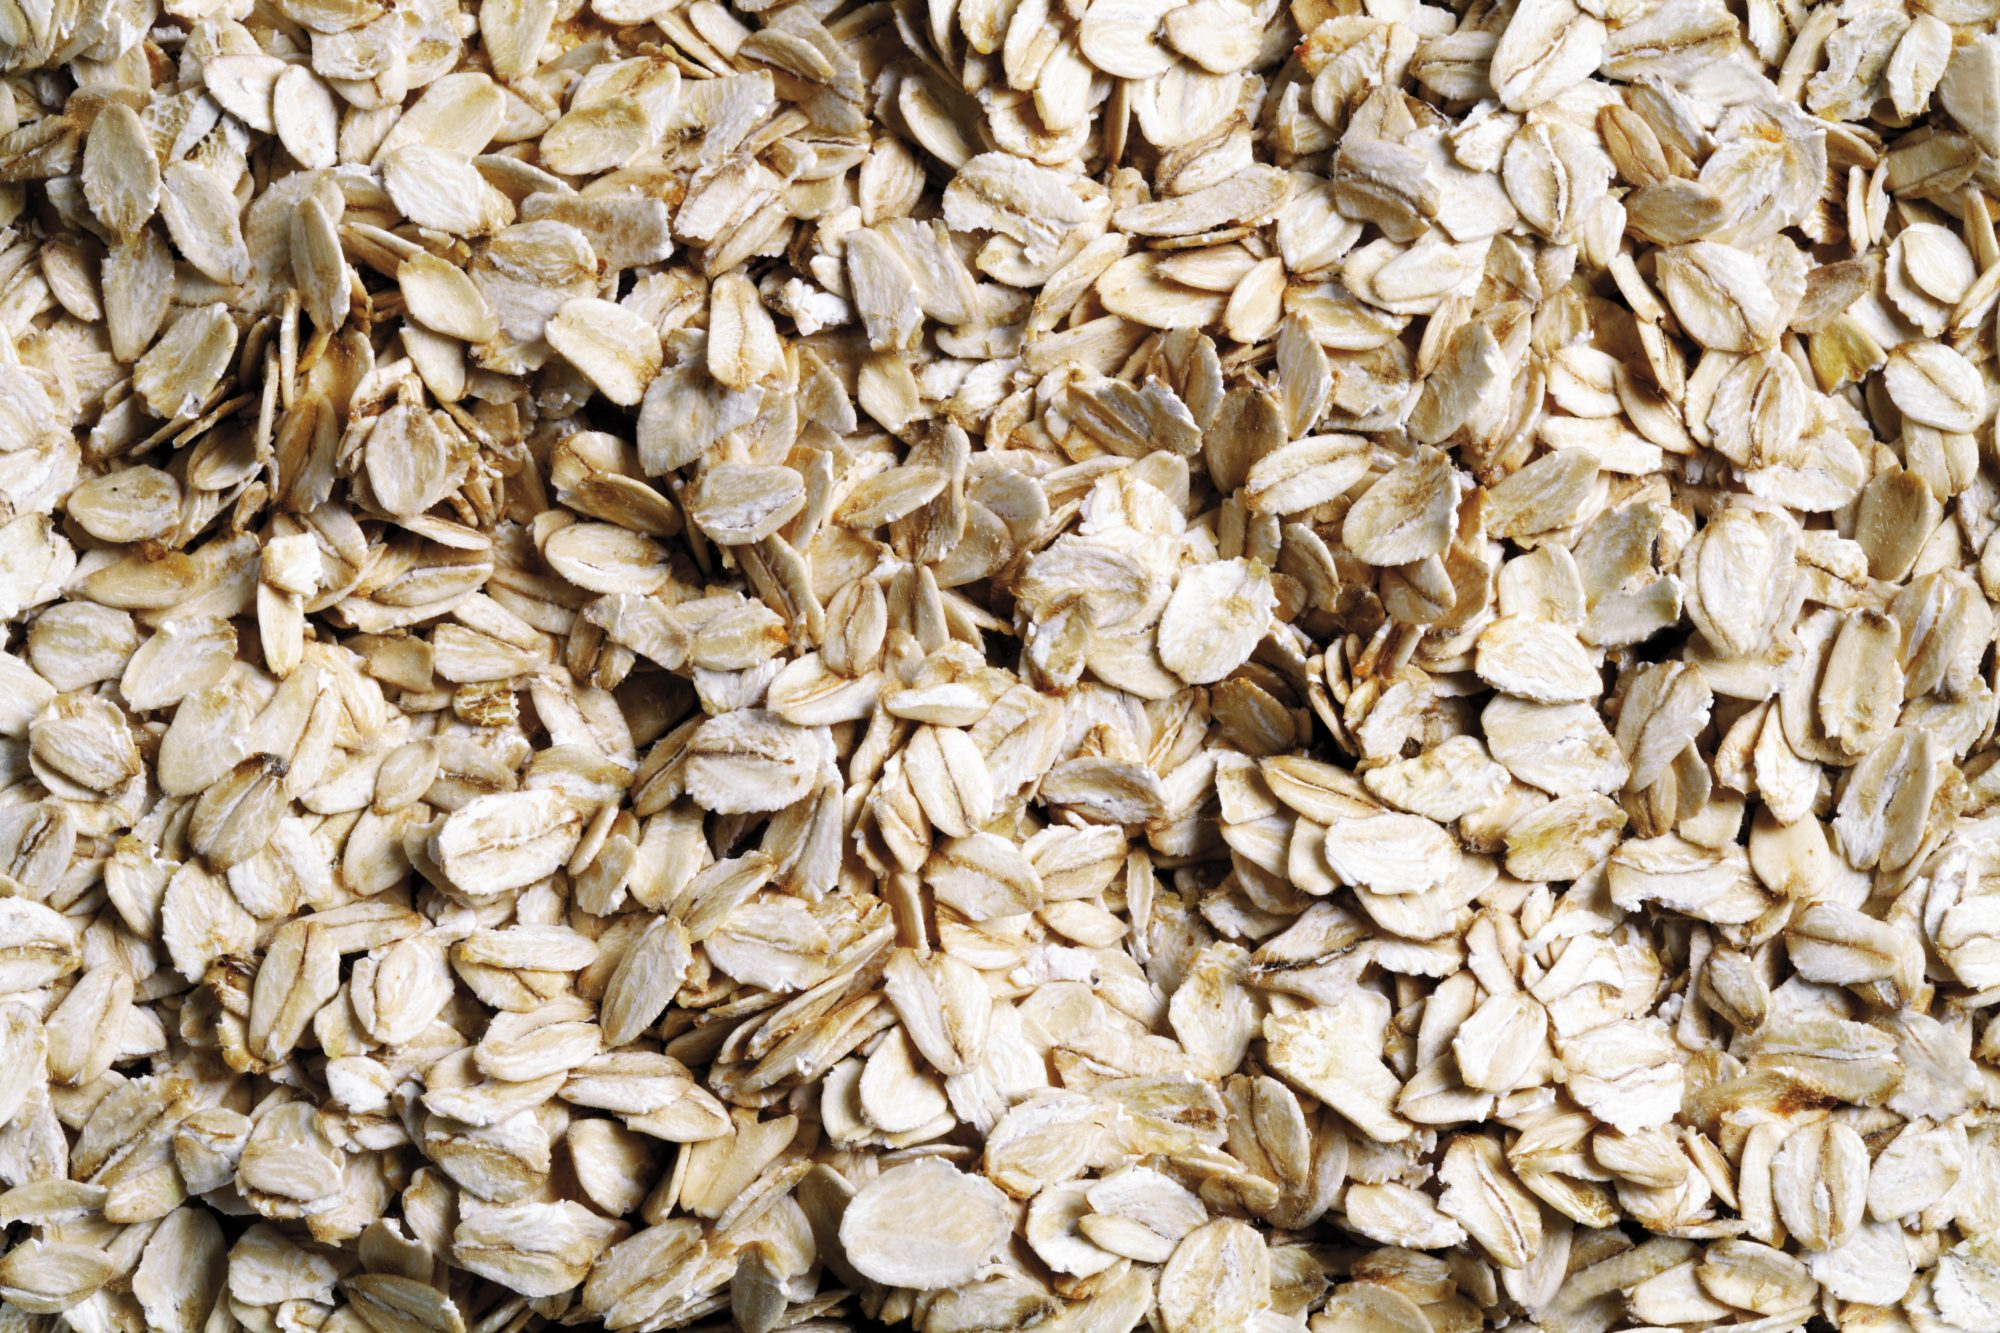 Foods That Make You Sleepy: Oats